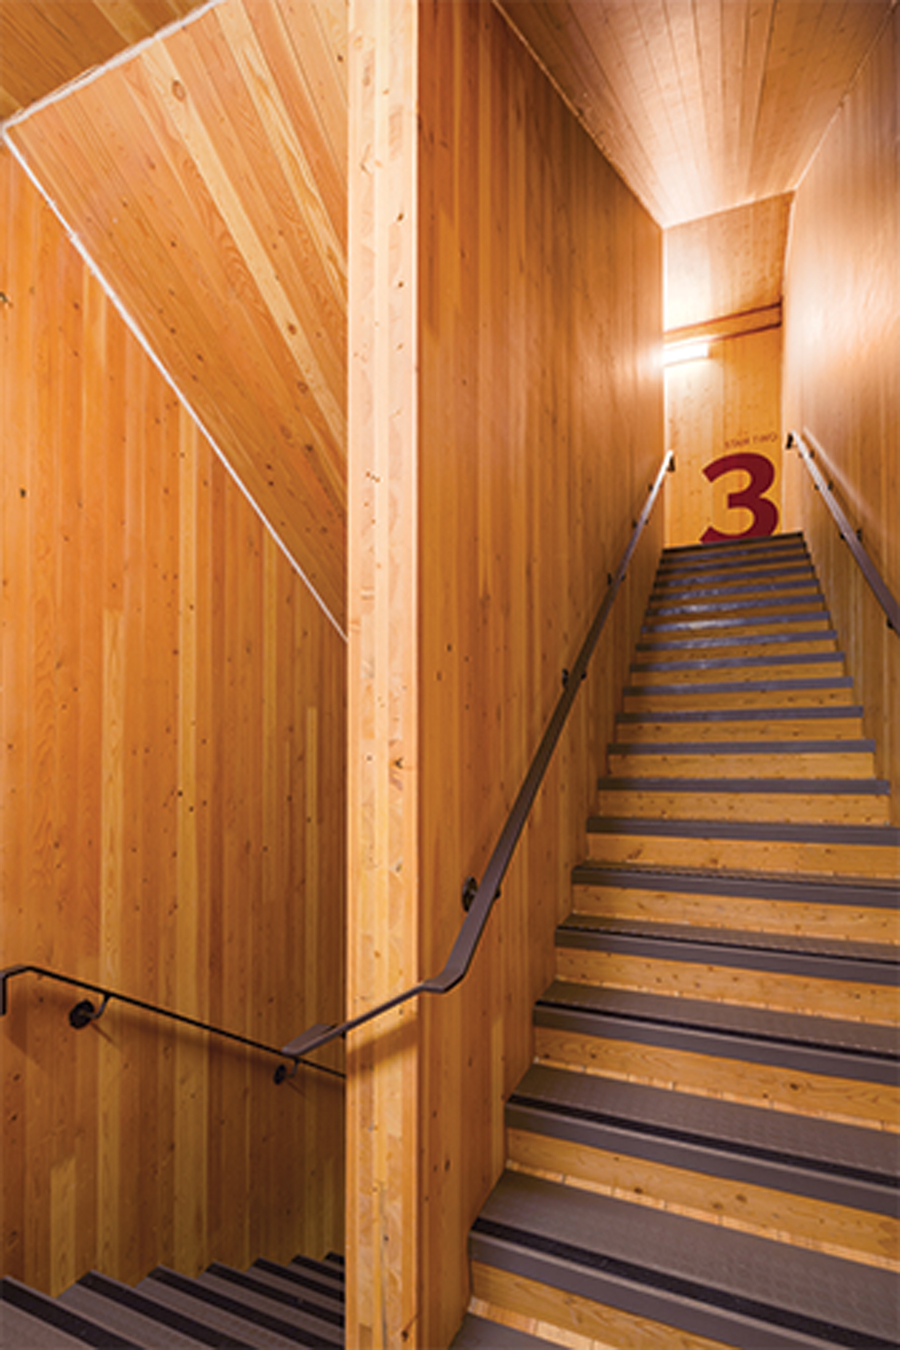 The stair core walls are built from CLT panels, contributing to the lateral load resistance of the structure.